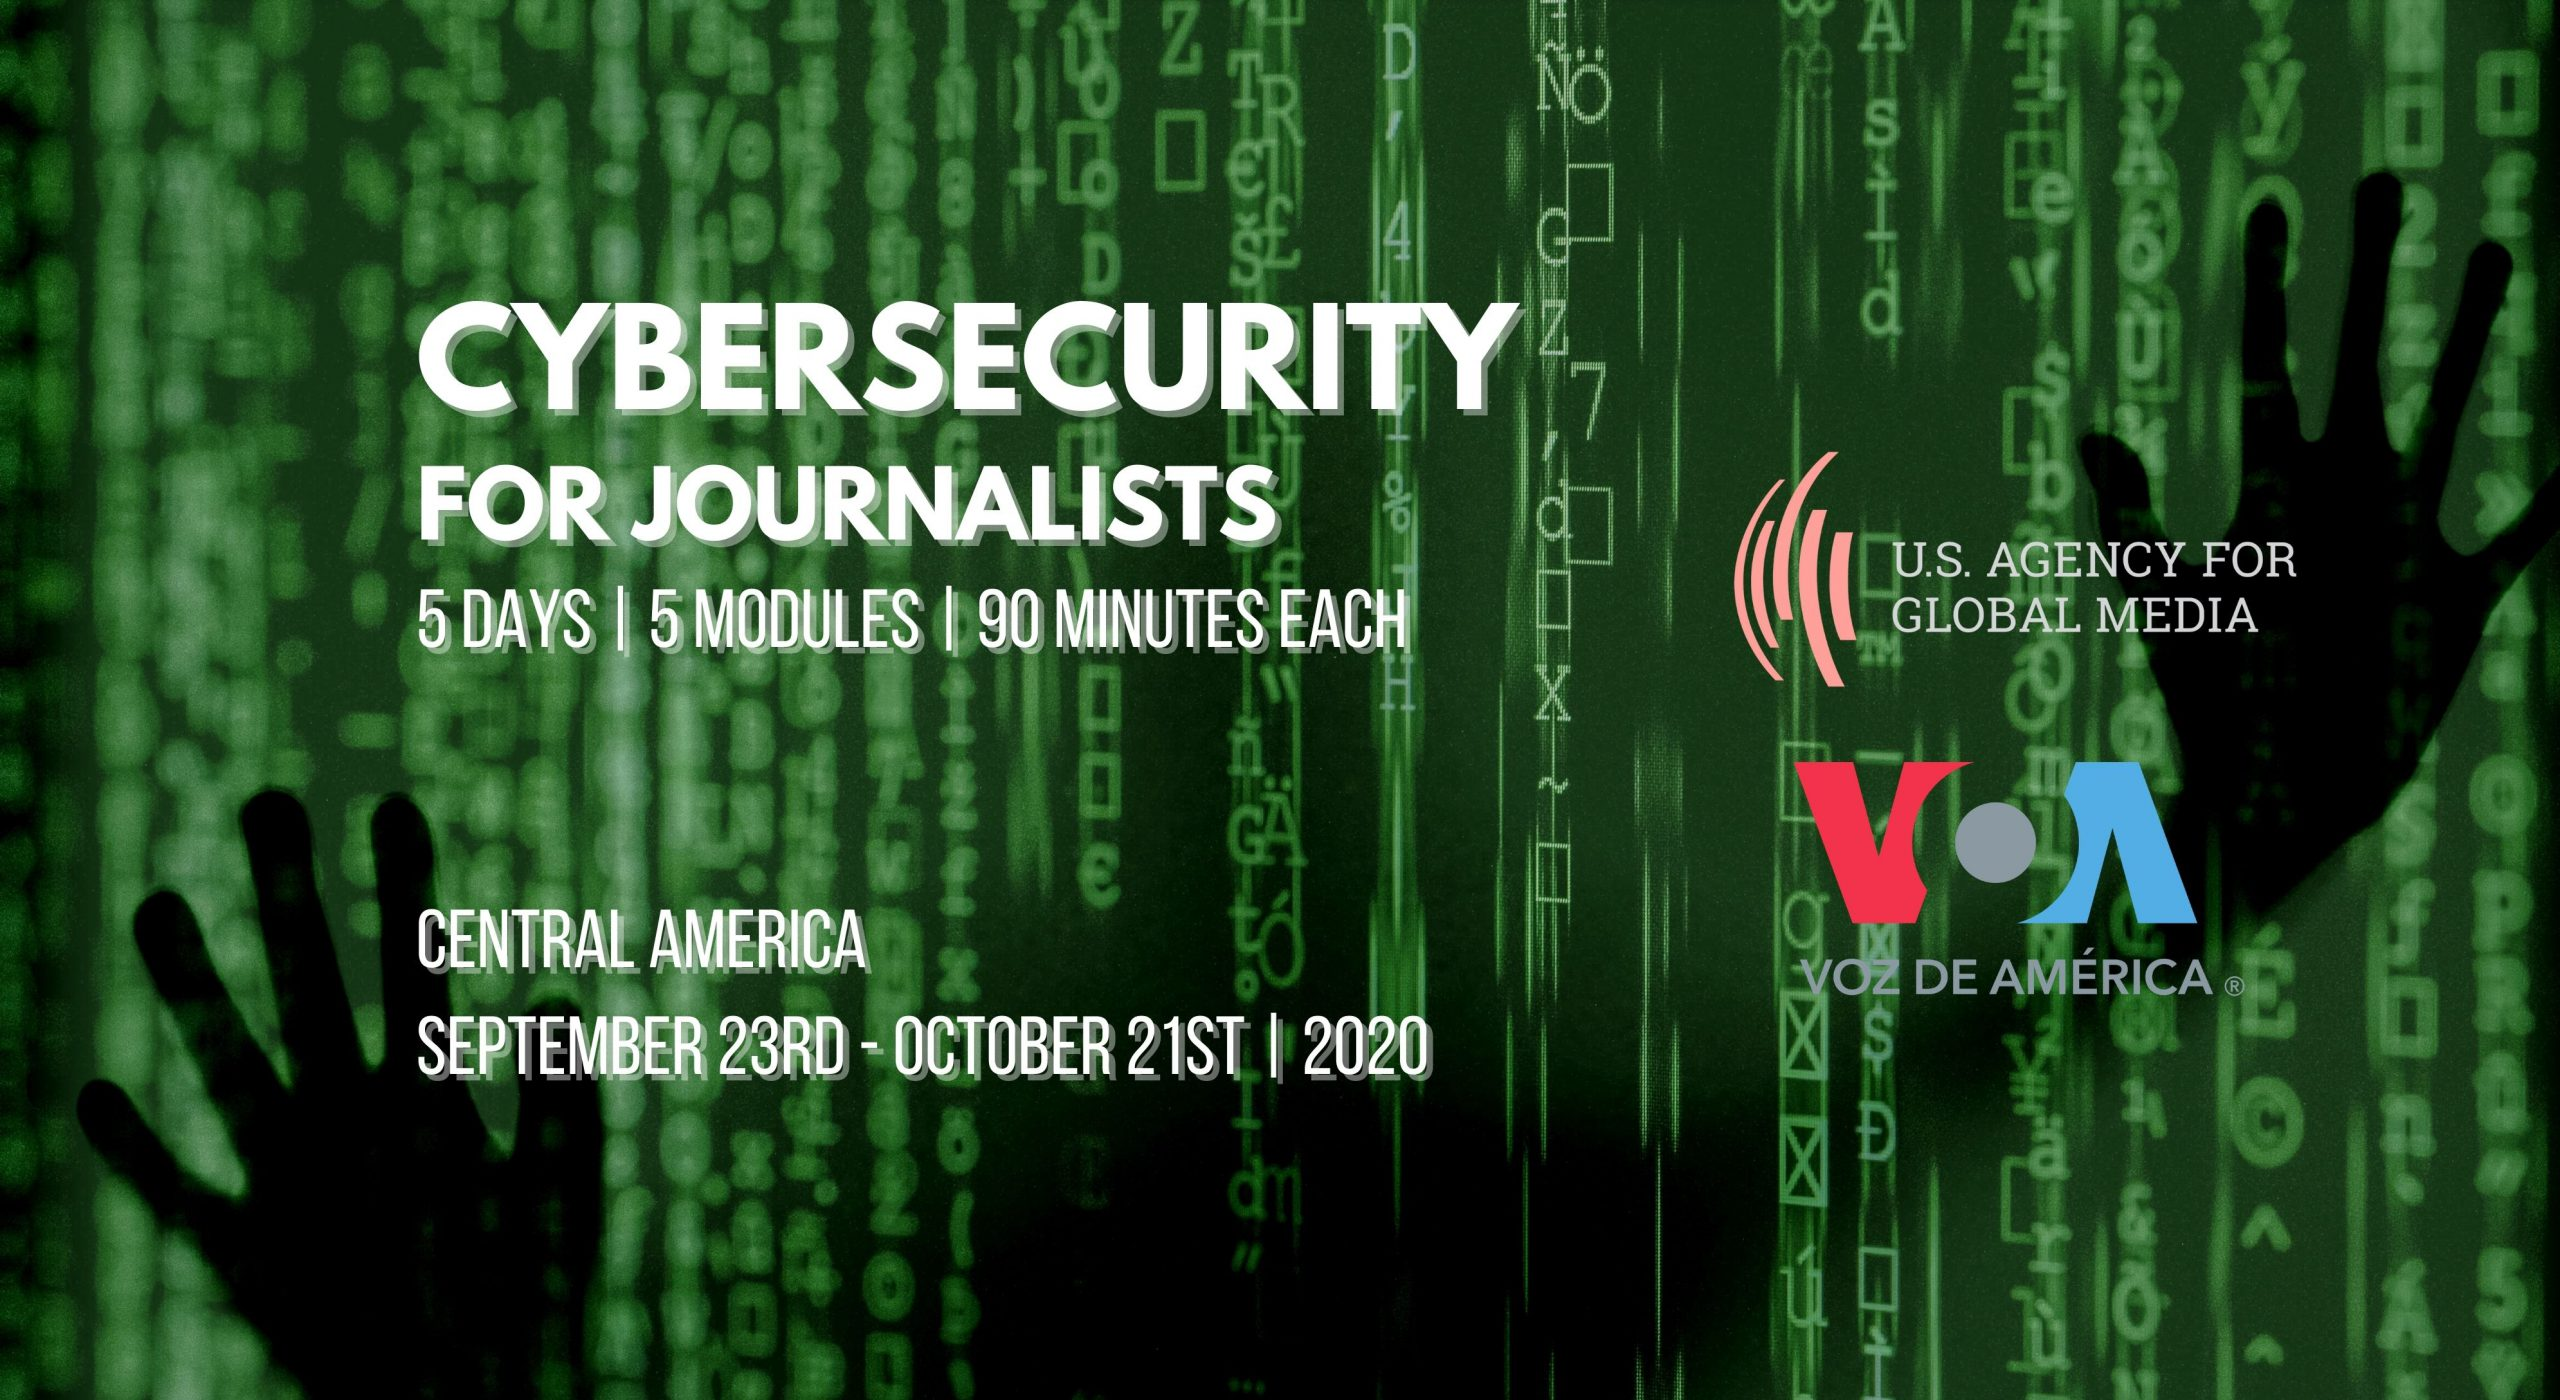 Central America: Cybersecurity for journalists